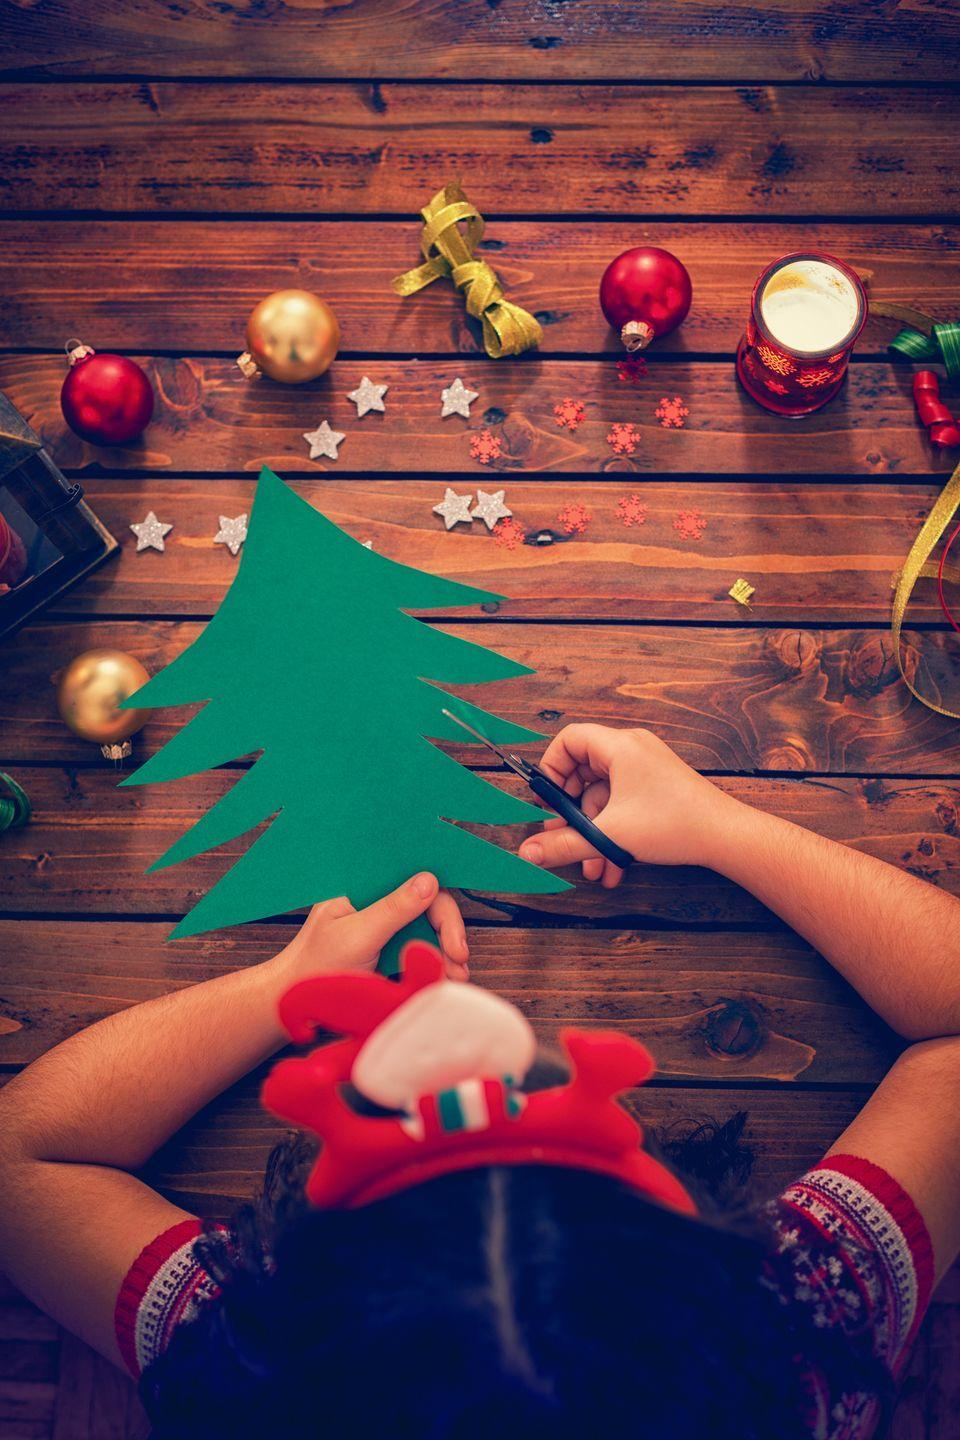 """<p>Feeling crafty? You can never have too many <a href=""""https://www.countryliving.com/life/kids-pets/g5030/christmas-crafts-for-kids/"""" rel=""""nofollow noopener"""" target=""""_blank"""" data-ylk=""""slk:Christmas crafts"""" class=""""link rapid-noclick-resp"""">Christmas crafts</a>. Get started on DIYs for next year by giving your kids paper, glitter, and glue!</p><p><a class=""""link rapid-noclick-resp"""" href=""""https://www.amazon.com/Crayola-Construction-Classic-Projects-Classrooms/dp/B003W0PBR2/ref=sr_1_2?dchild=1&keywords=craft+paper&qid=1632338624&sr=8-2&tag=syn-yahoo-20&ascsubtag=%5Bartid%7C10050.g.25411840%5Bsrc%7Cyahoo-us"""" rel=""""nofollow noopener"""" target=""""_blank"""" data-ylk=""""slk:SHOP CRAFT PAPER"""">SHOP CRAFT PAPER</a></p>"""